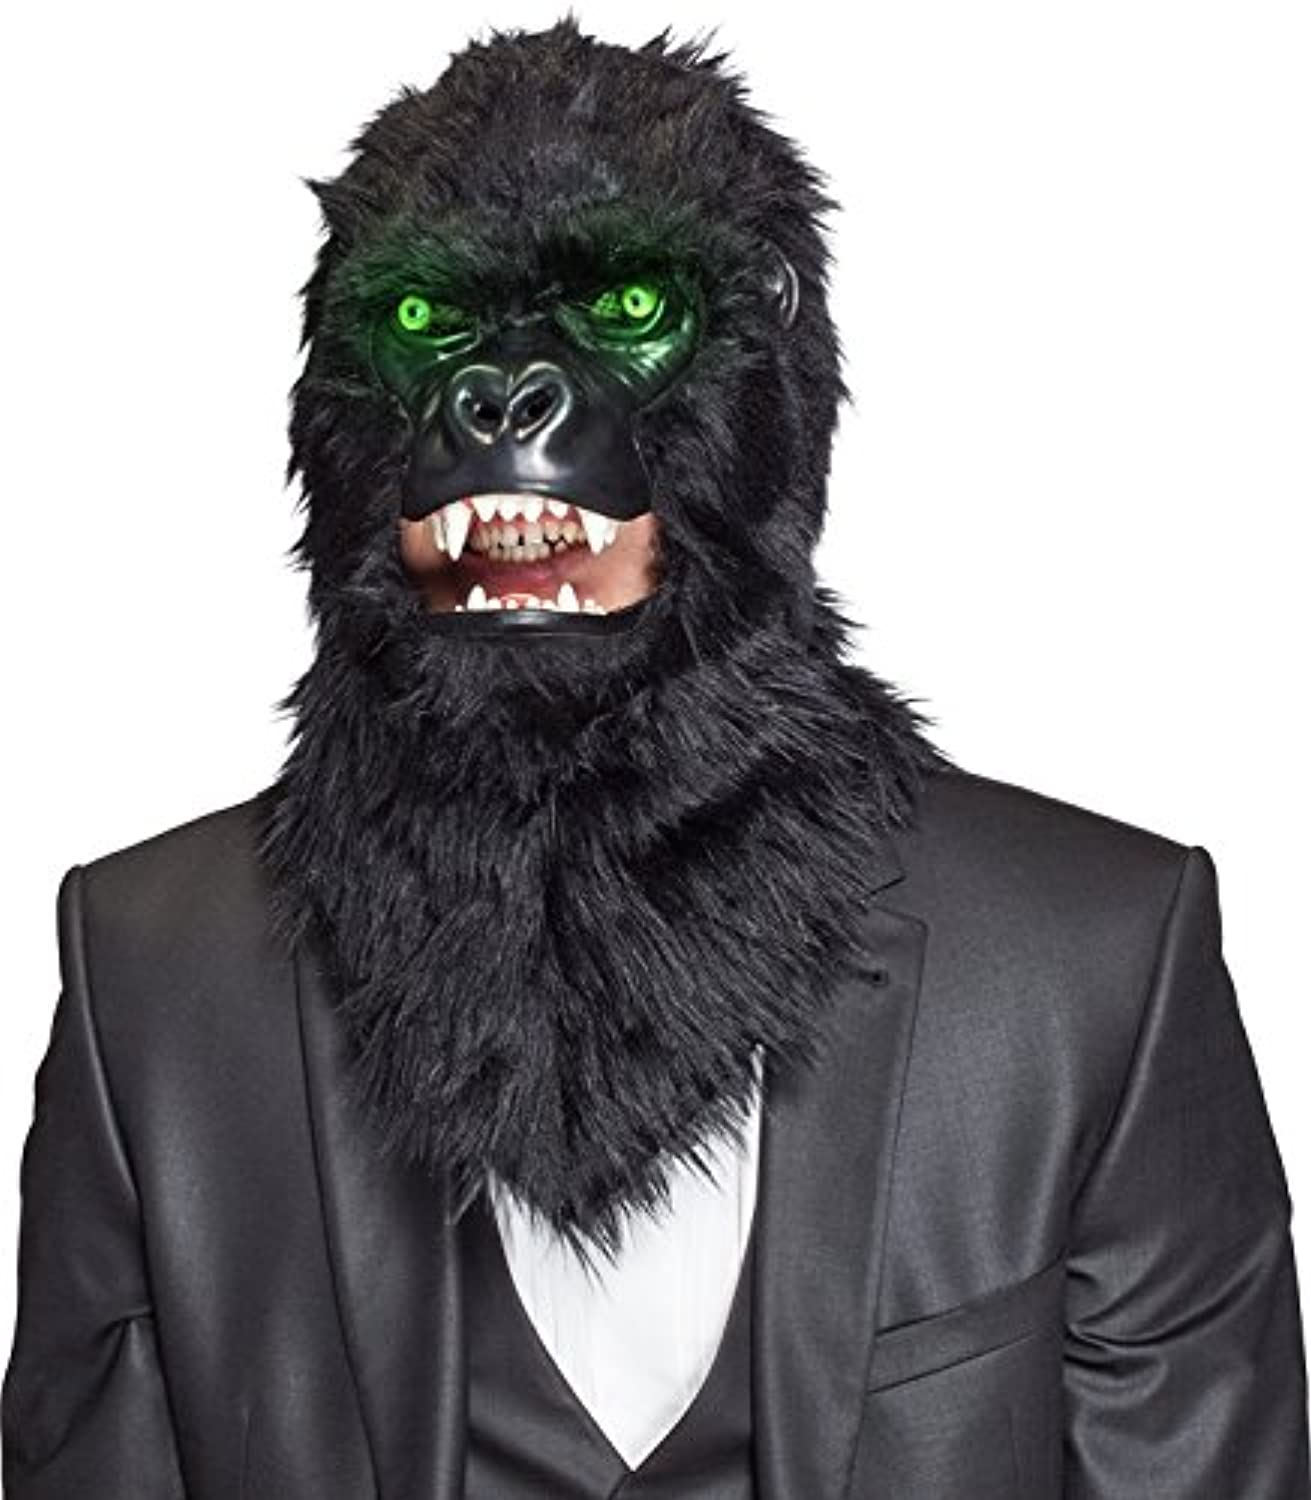 Gorilla mask  movable mask with light